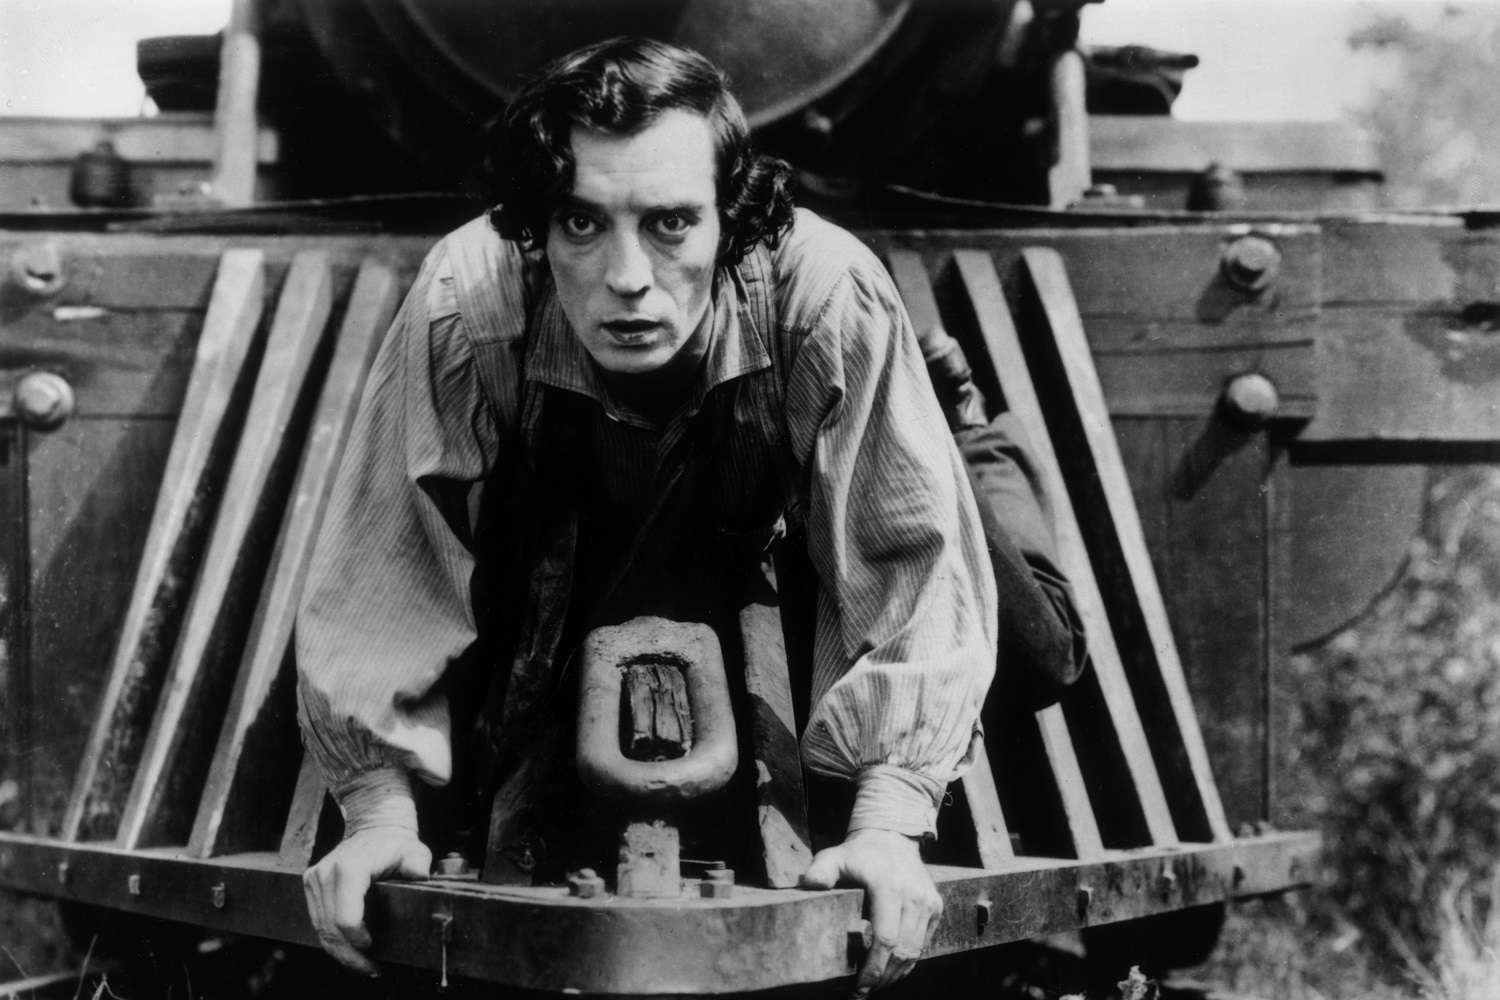 Silent screen comedian Buster Keaton riding the front of a railroad engine in his 1926 film 'The General'